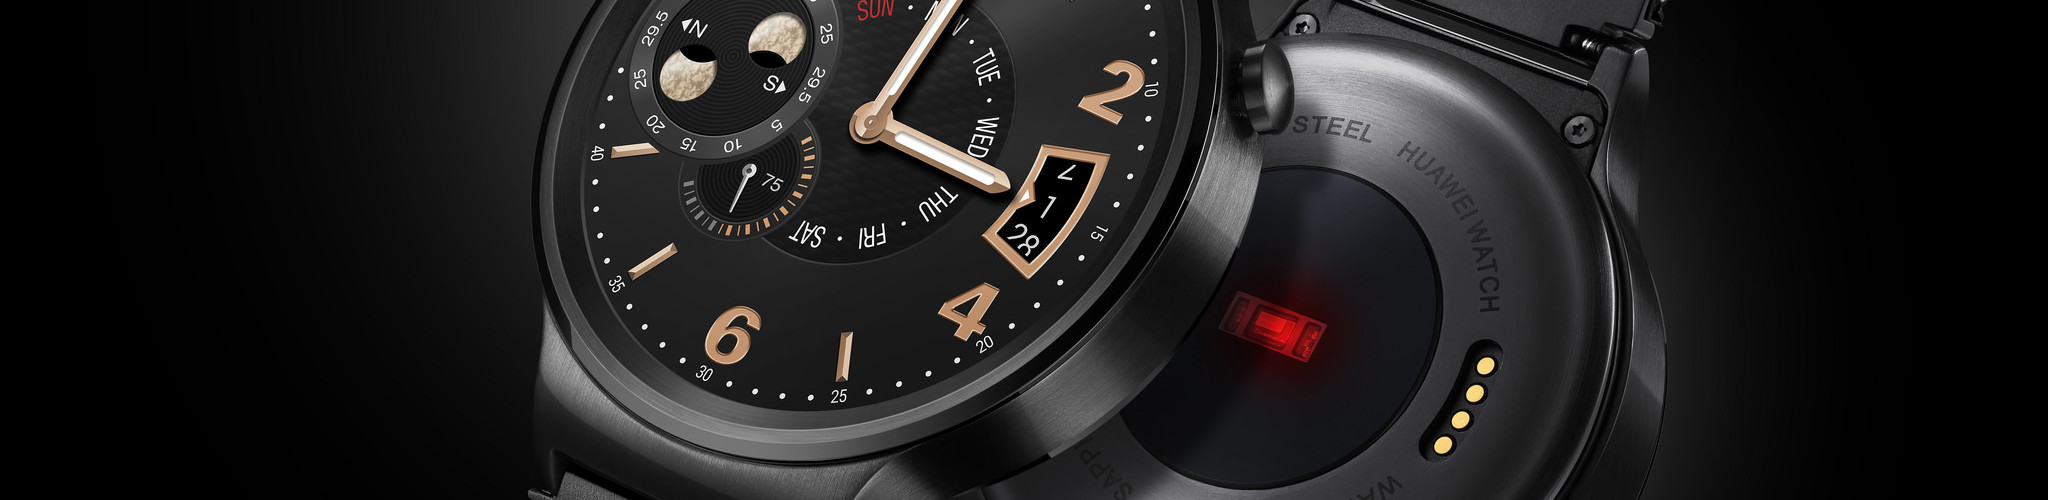 Huawei Smartwatch Featured Image